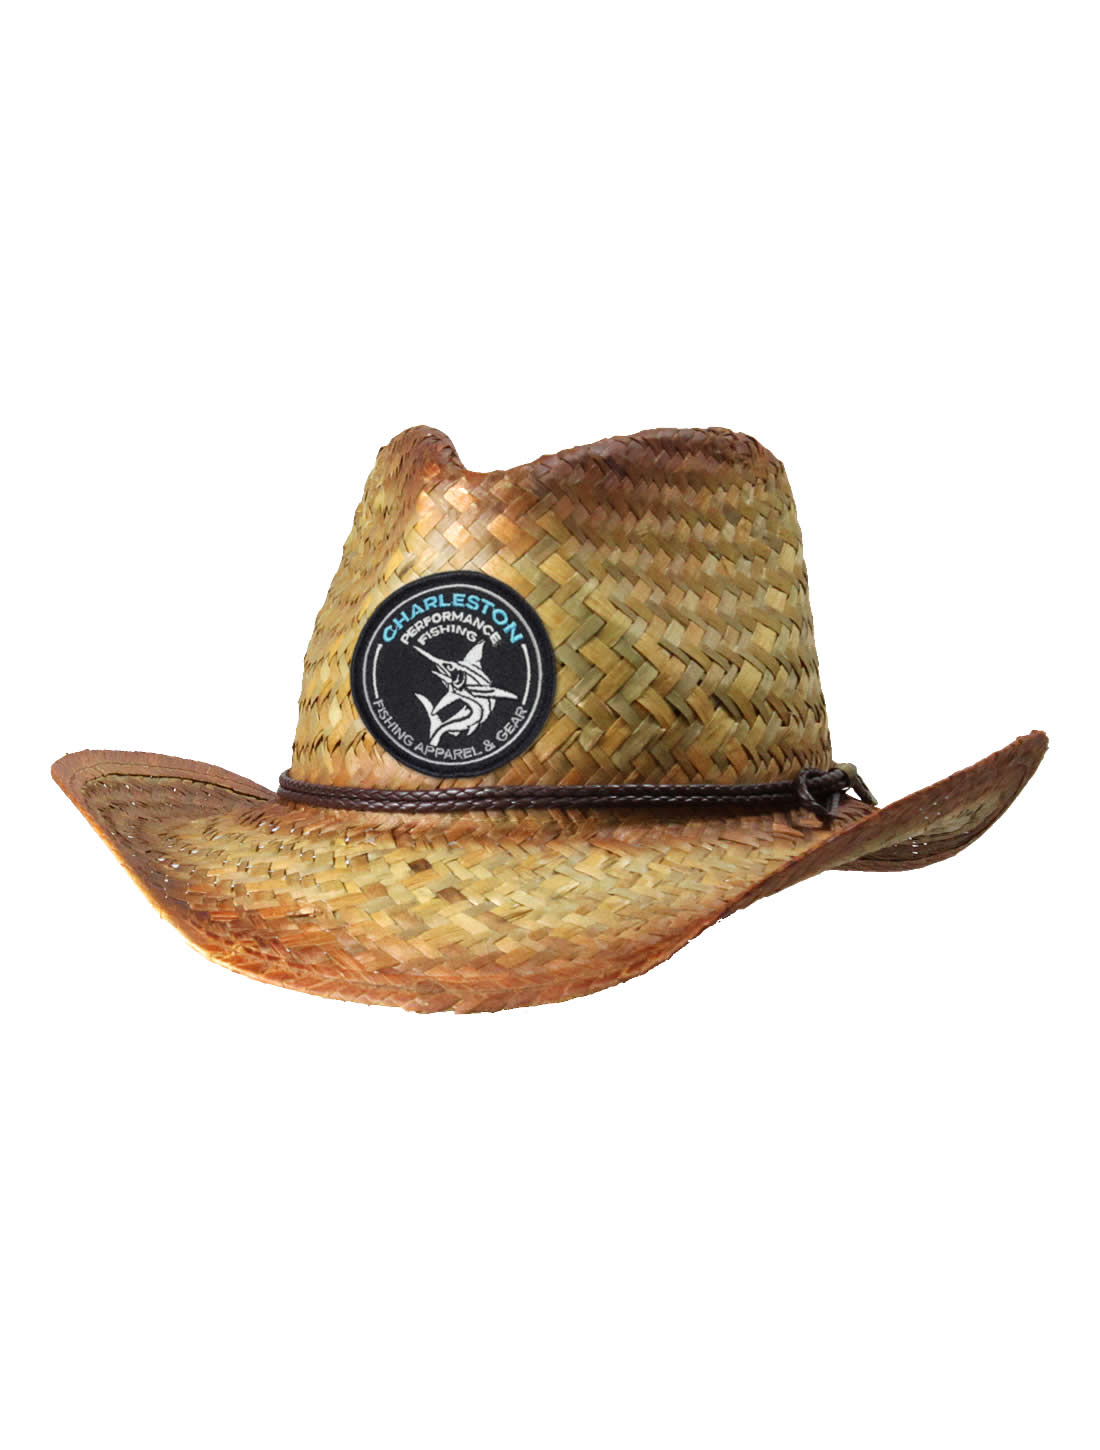 a1b6367b0d748 Tribal Marlin Tea-Stained Straw Cowboy Fishing Hat - CPF Gear